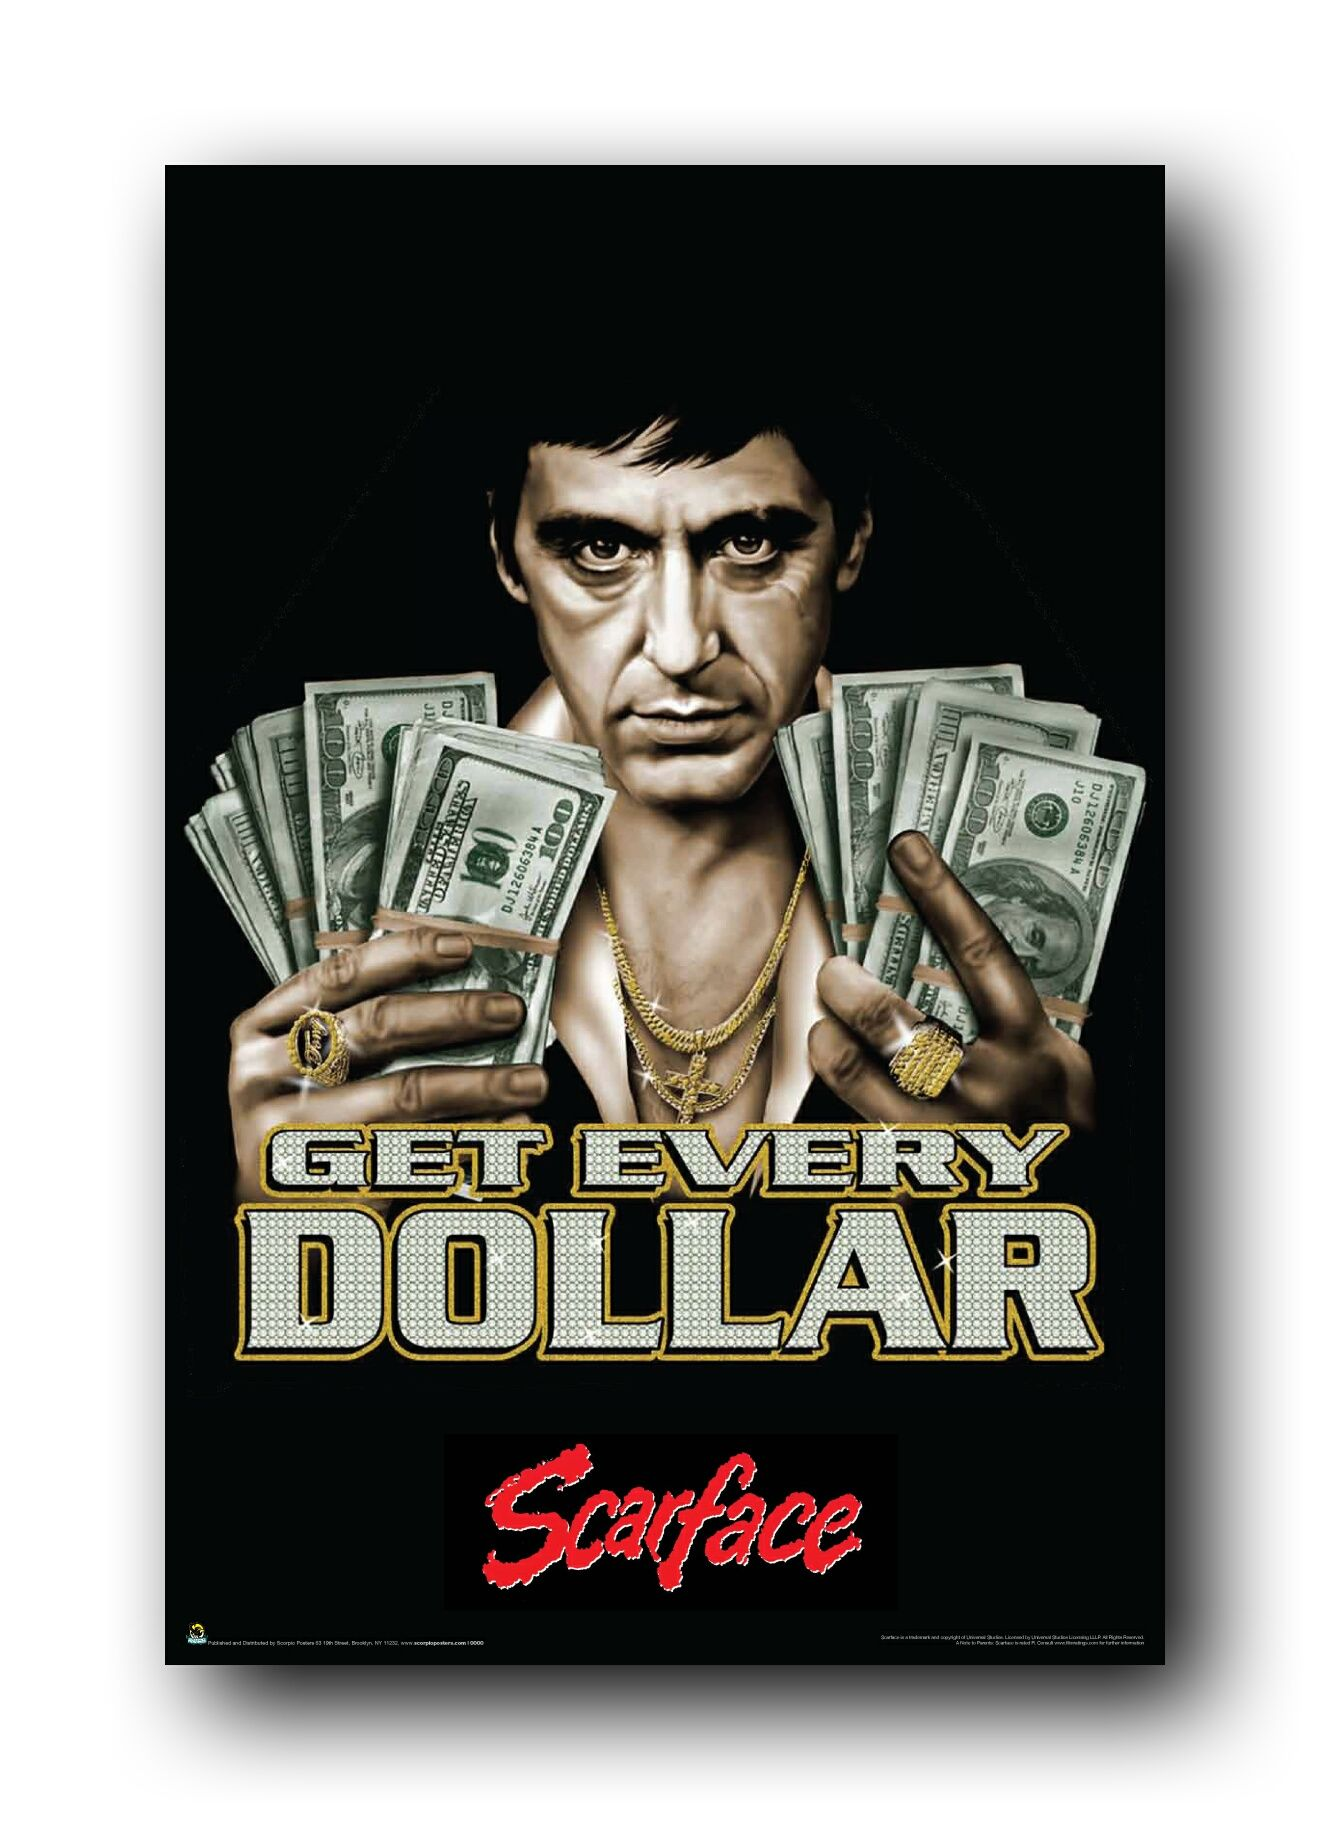 Scarface Title Scarface Wallpaper Category 7 Picture Information Title Scarface Scarface Poster Scarface Movie Poster Art